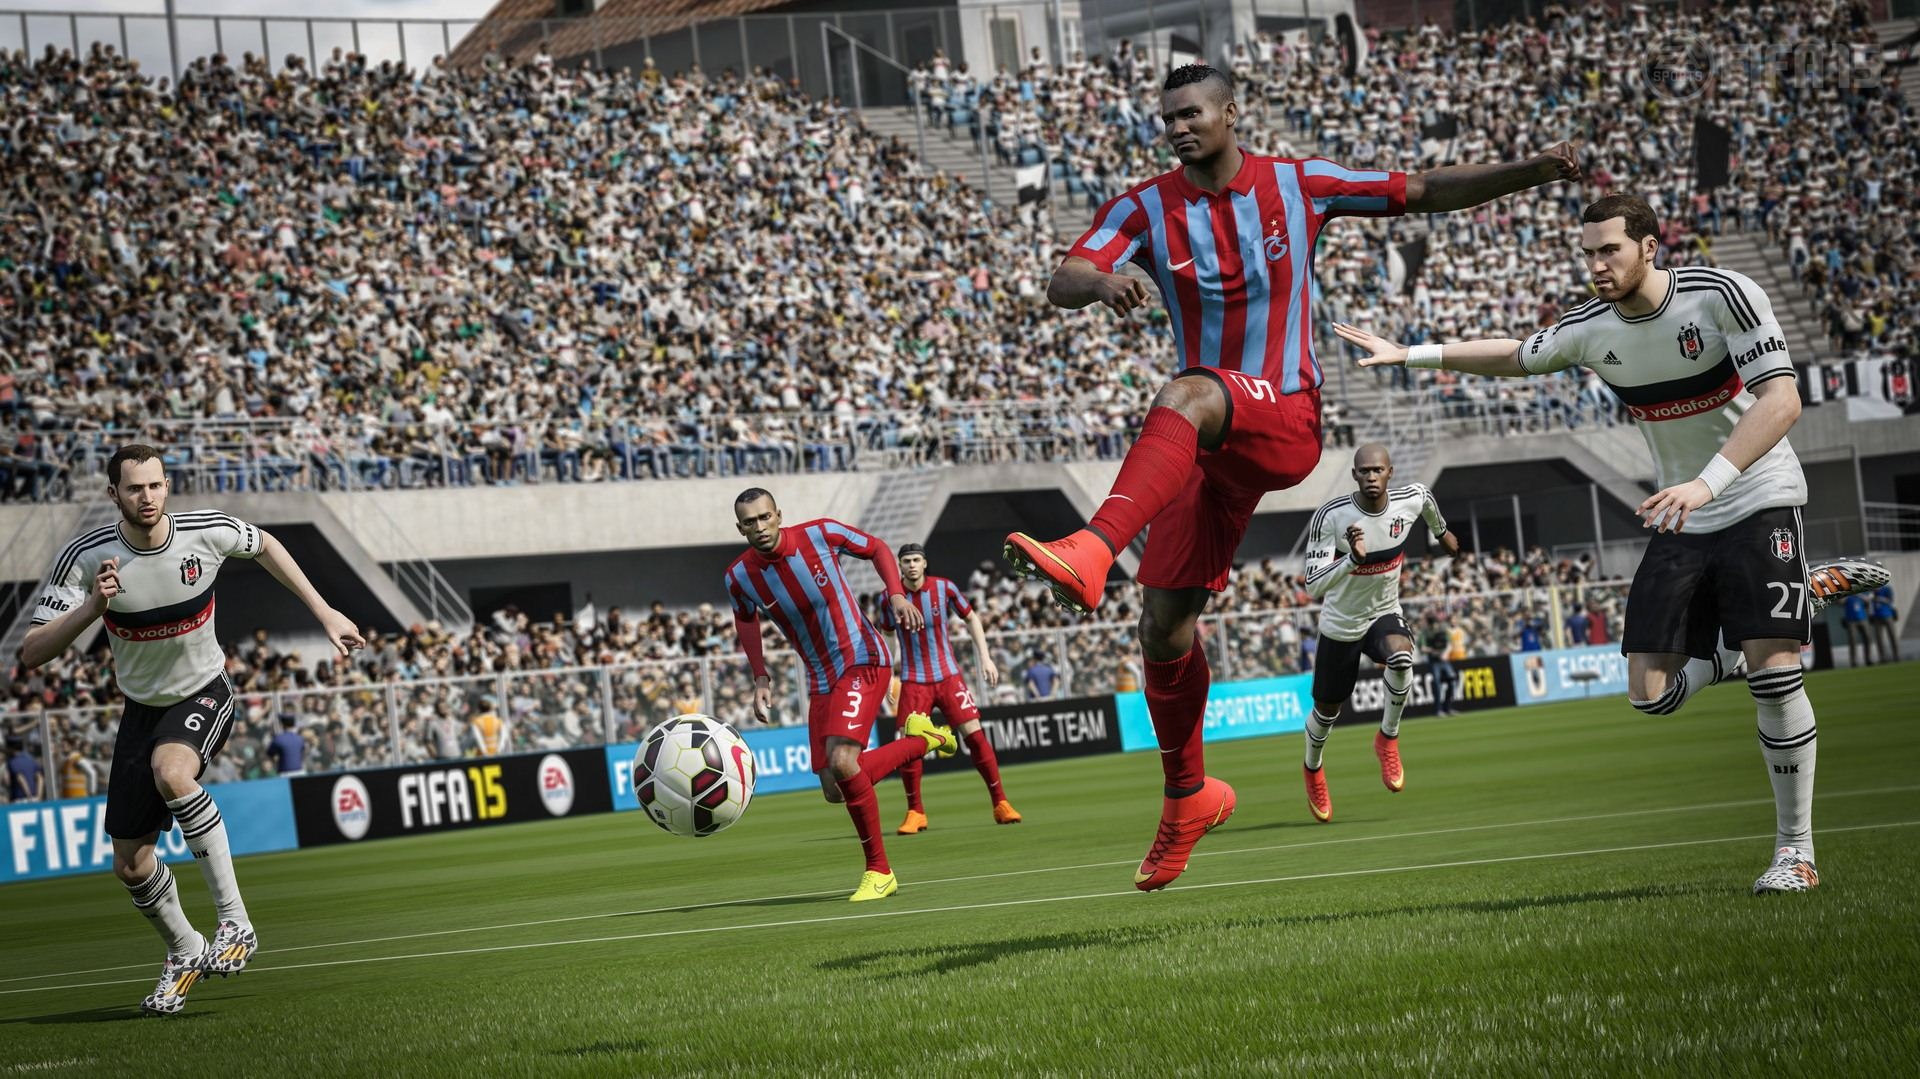 Impressive looking new fifa 15 1080p screenshots on ps4xbox one impressive looking new fifa 15 1080p screenshots on ps4xbox one released voltagebd Image collections